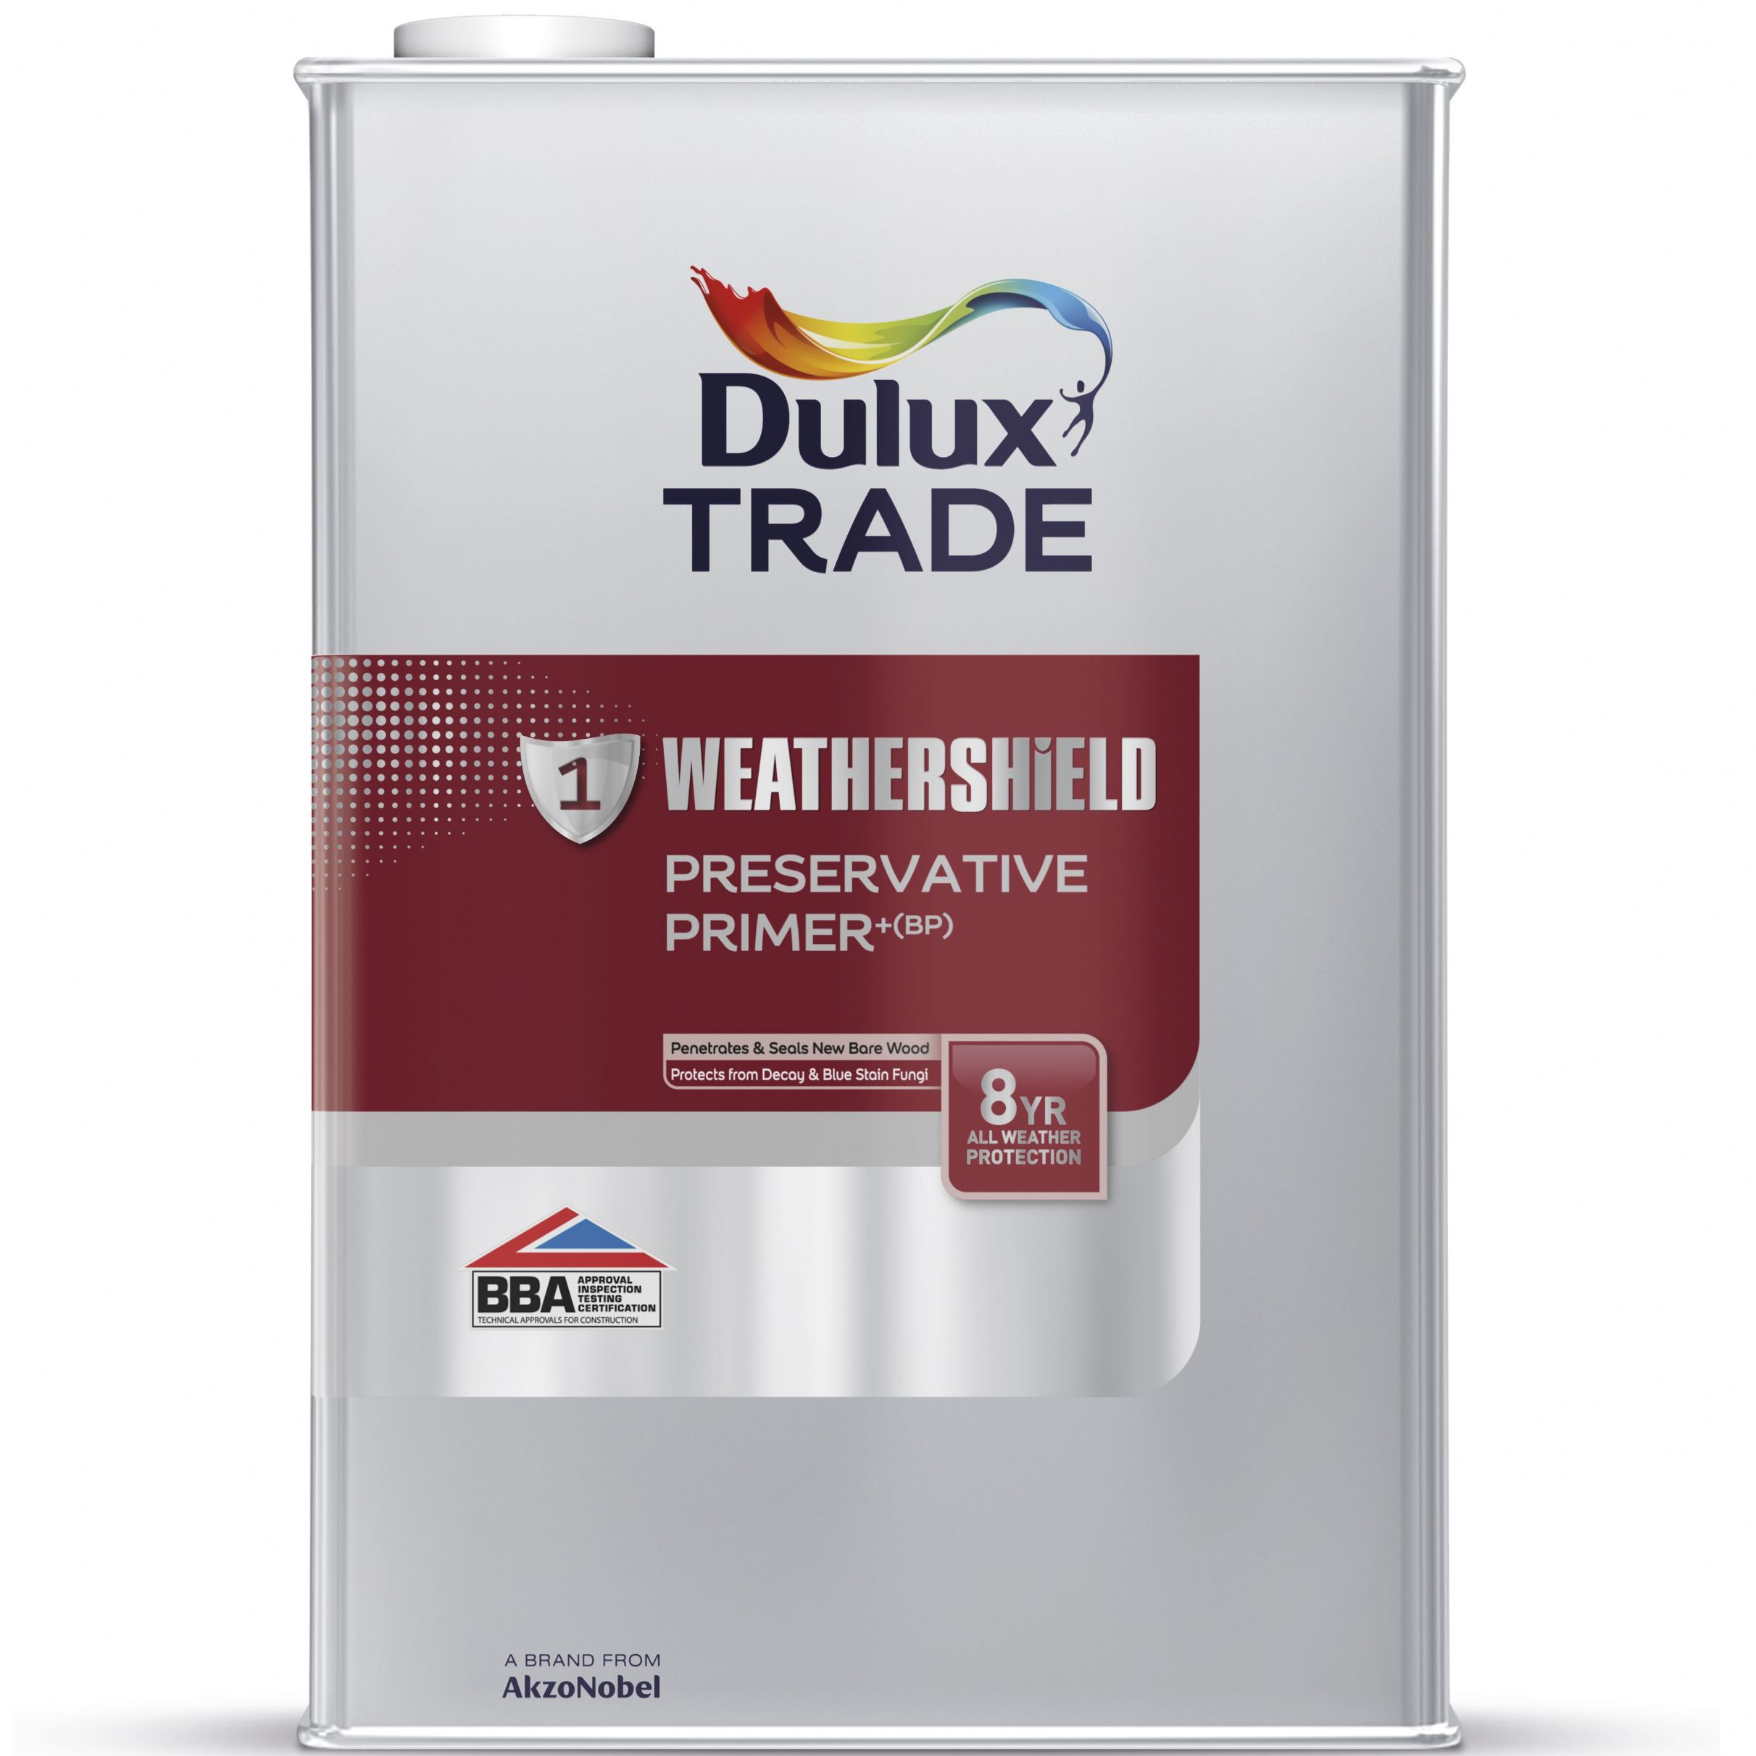 Dulux trade weathershield exterior preservative primer bp - Weathershield exterior paint system ...